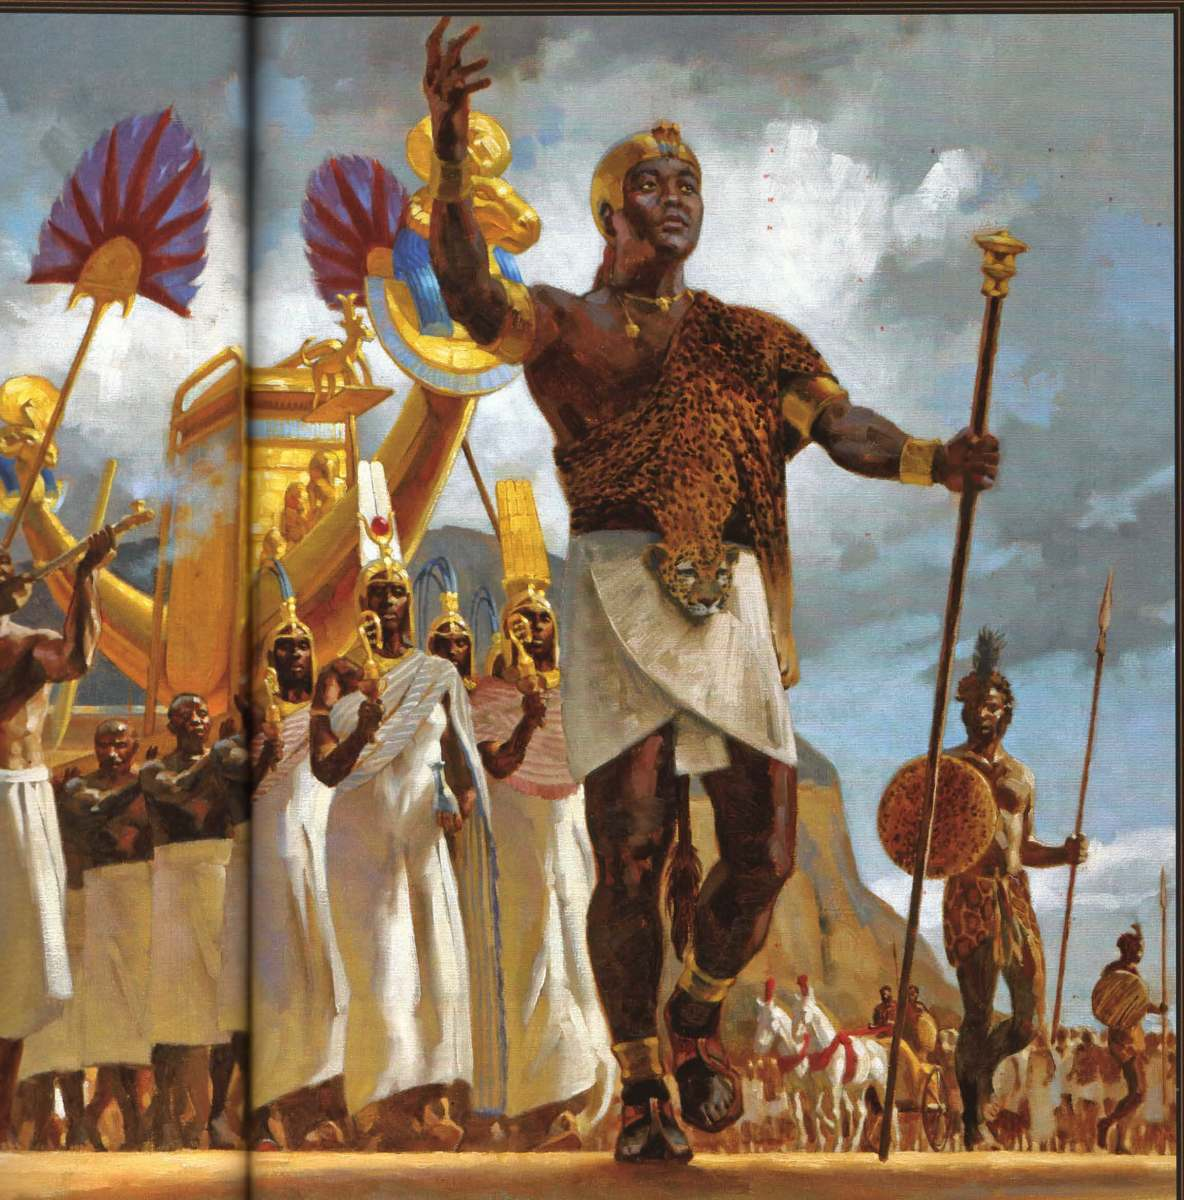 Pharaoh Piye and his Army and entourage